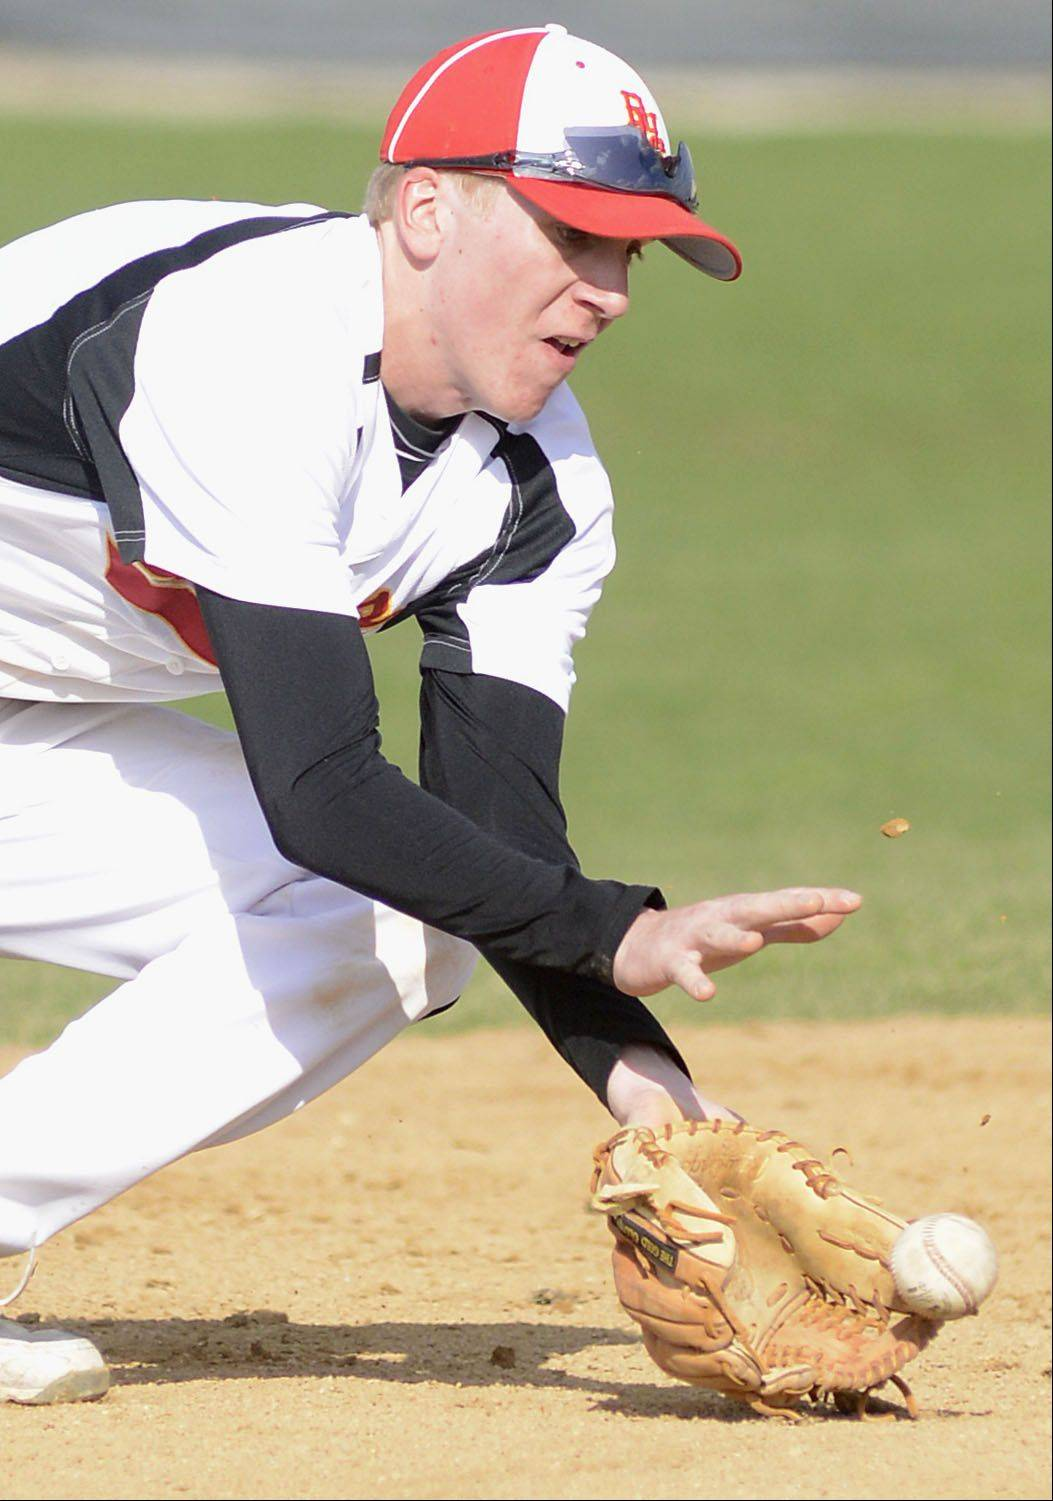 Batavia's Billy Zwick grabs a ground ball and sends it to first base in the second inning on Wednesday, April 24.